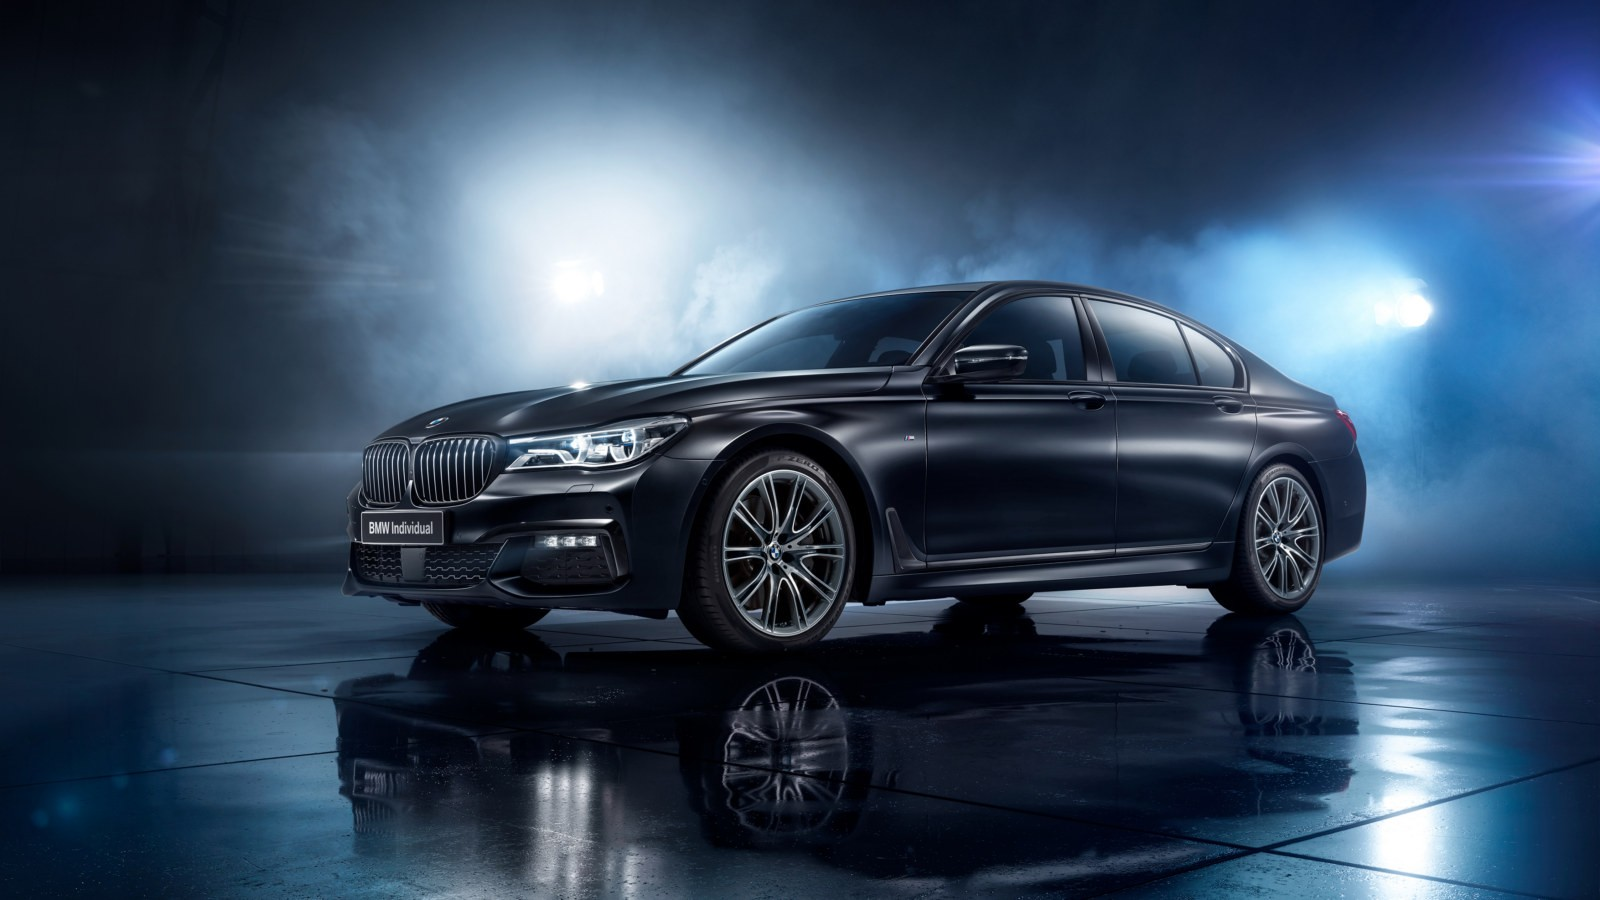 P90281599_highRes_bmw-7-series-black-i